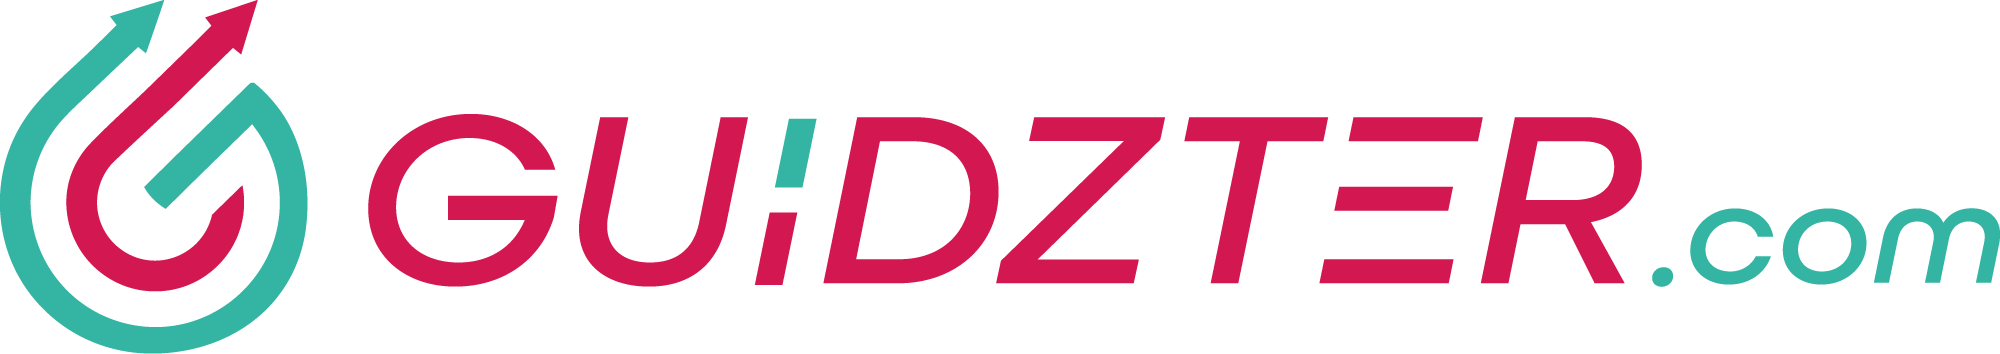 Guidzter logo